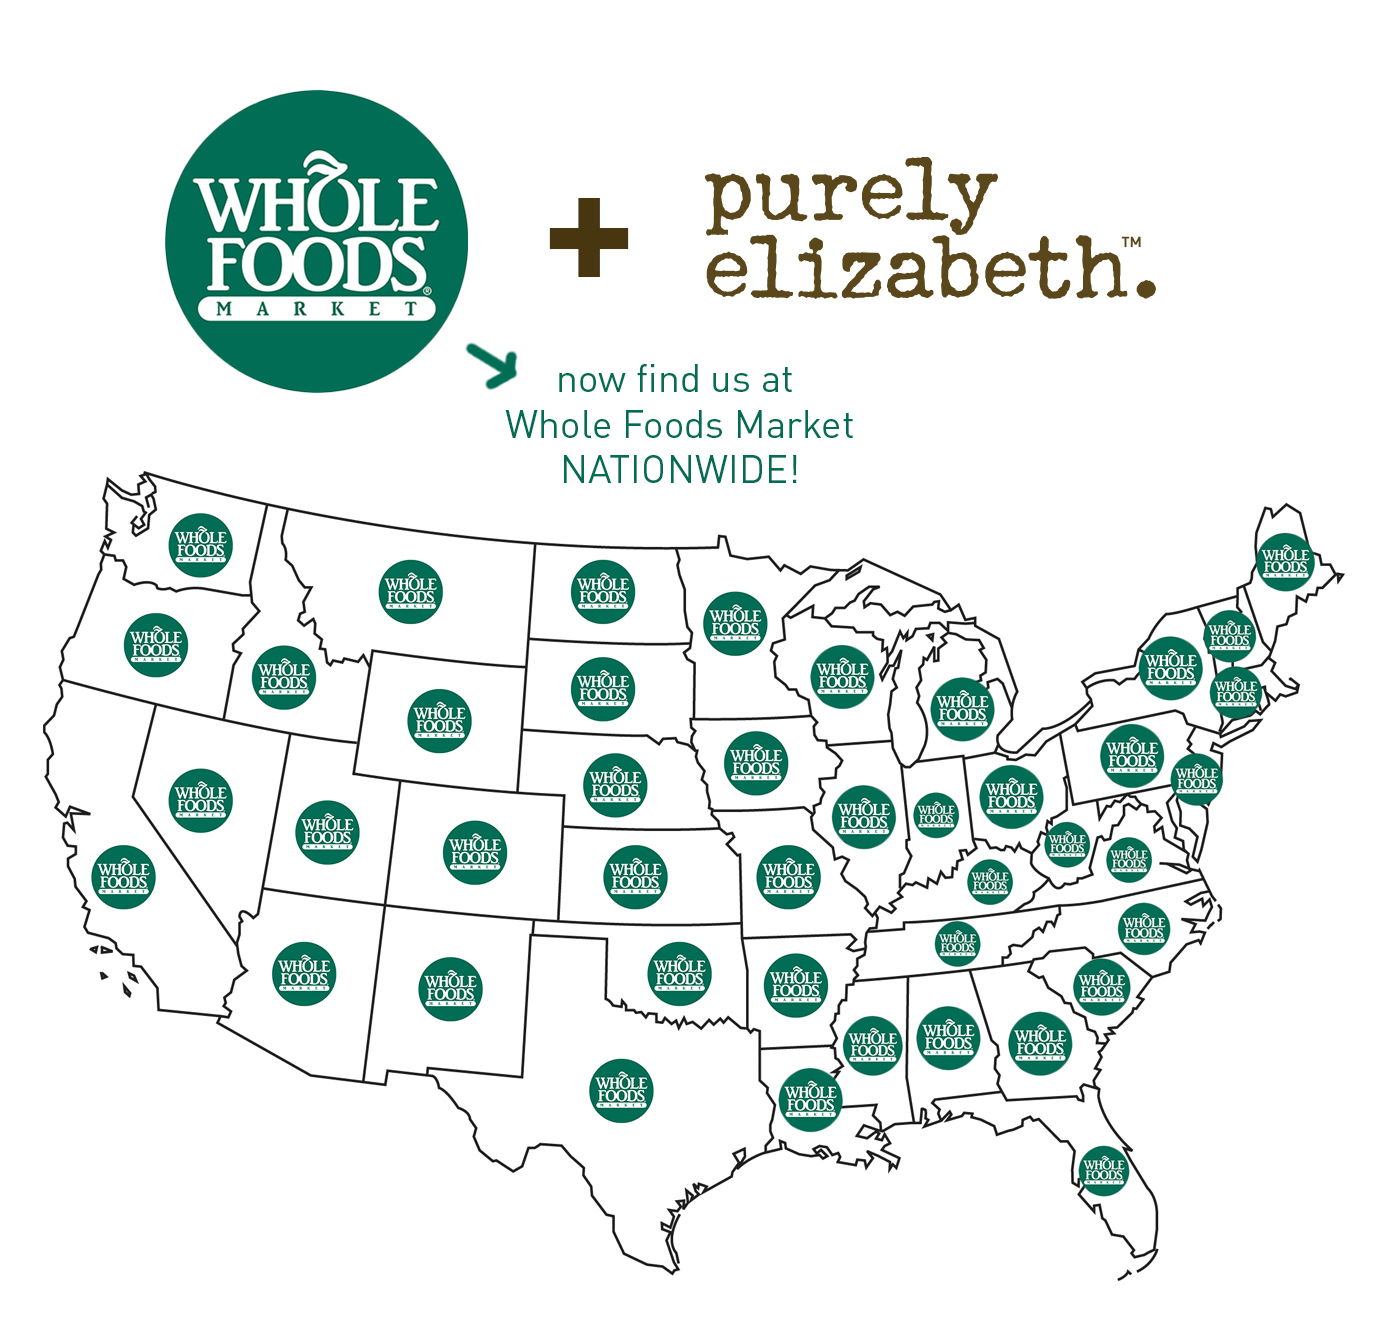 whole foods market global expansion essay Get access to jollibee foods corp a international expansion essays only from anti essays whole foods market wal mart global expansion.